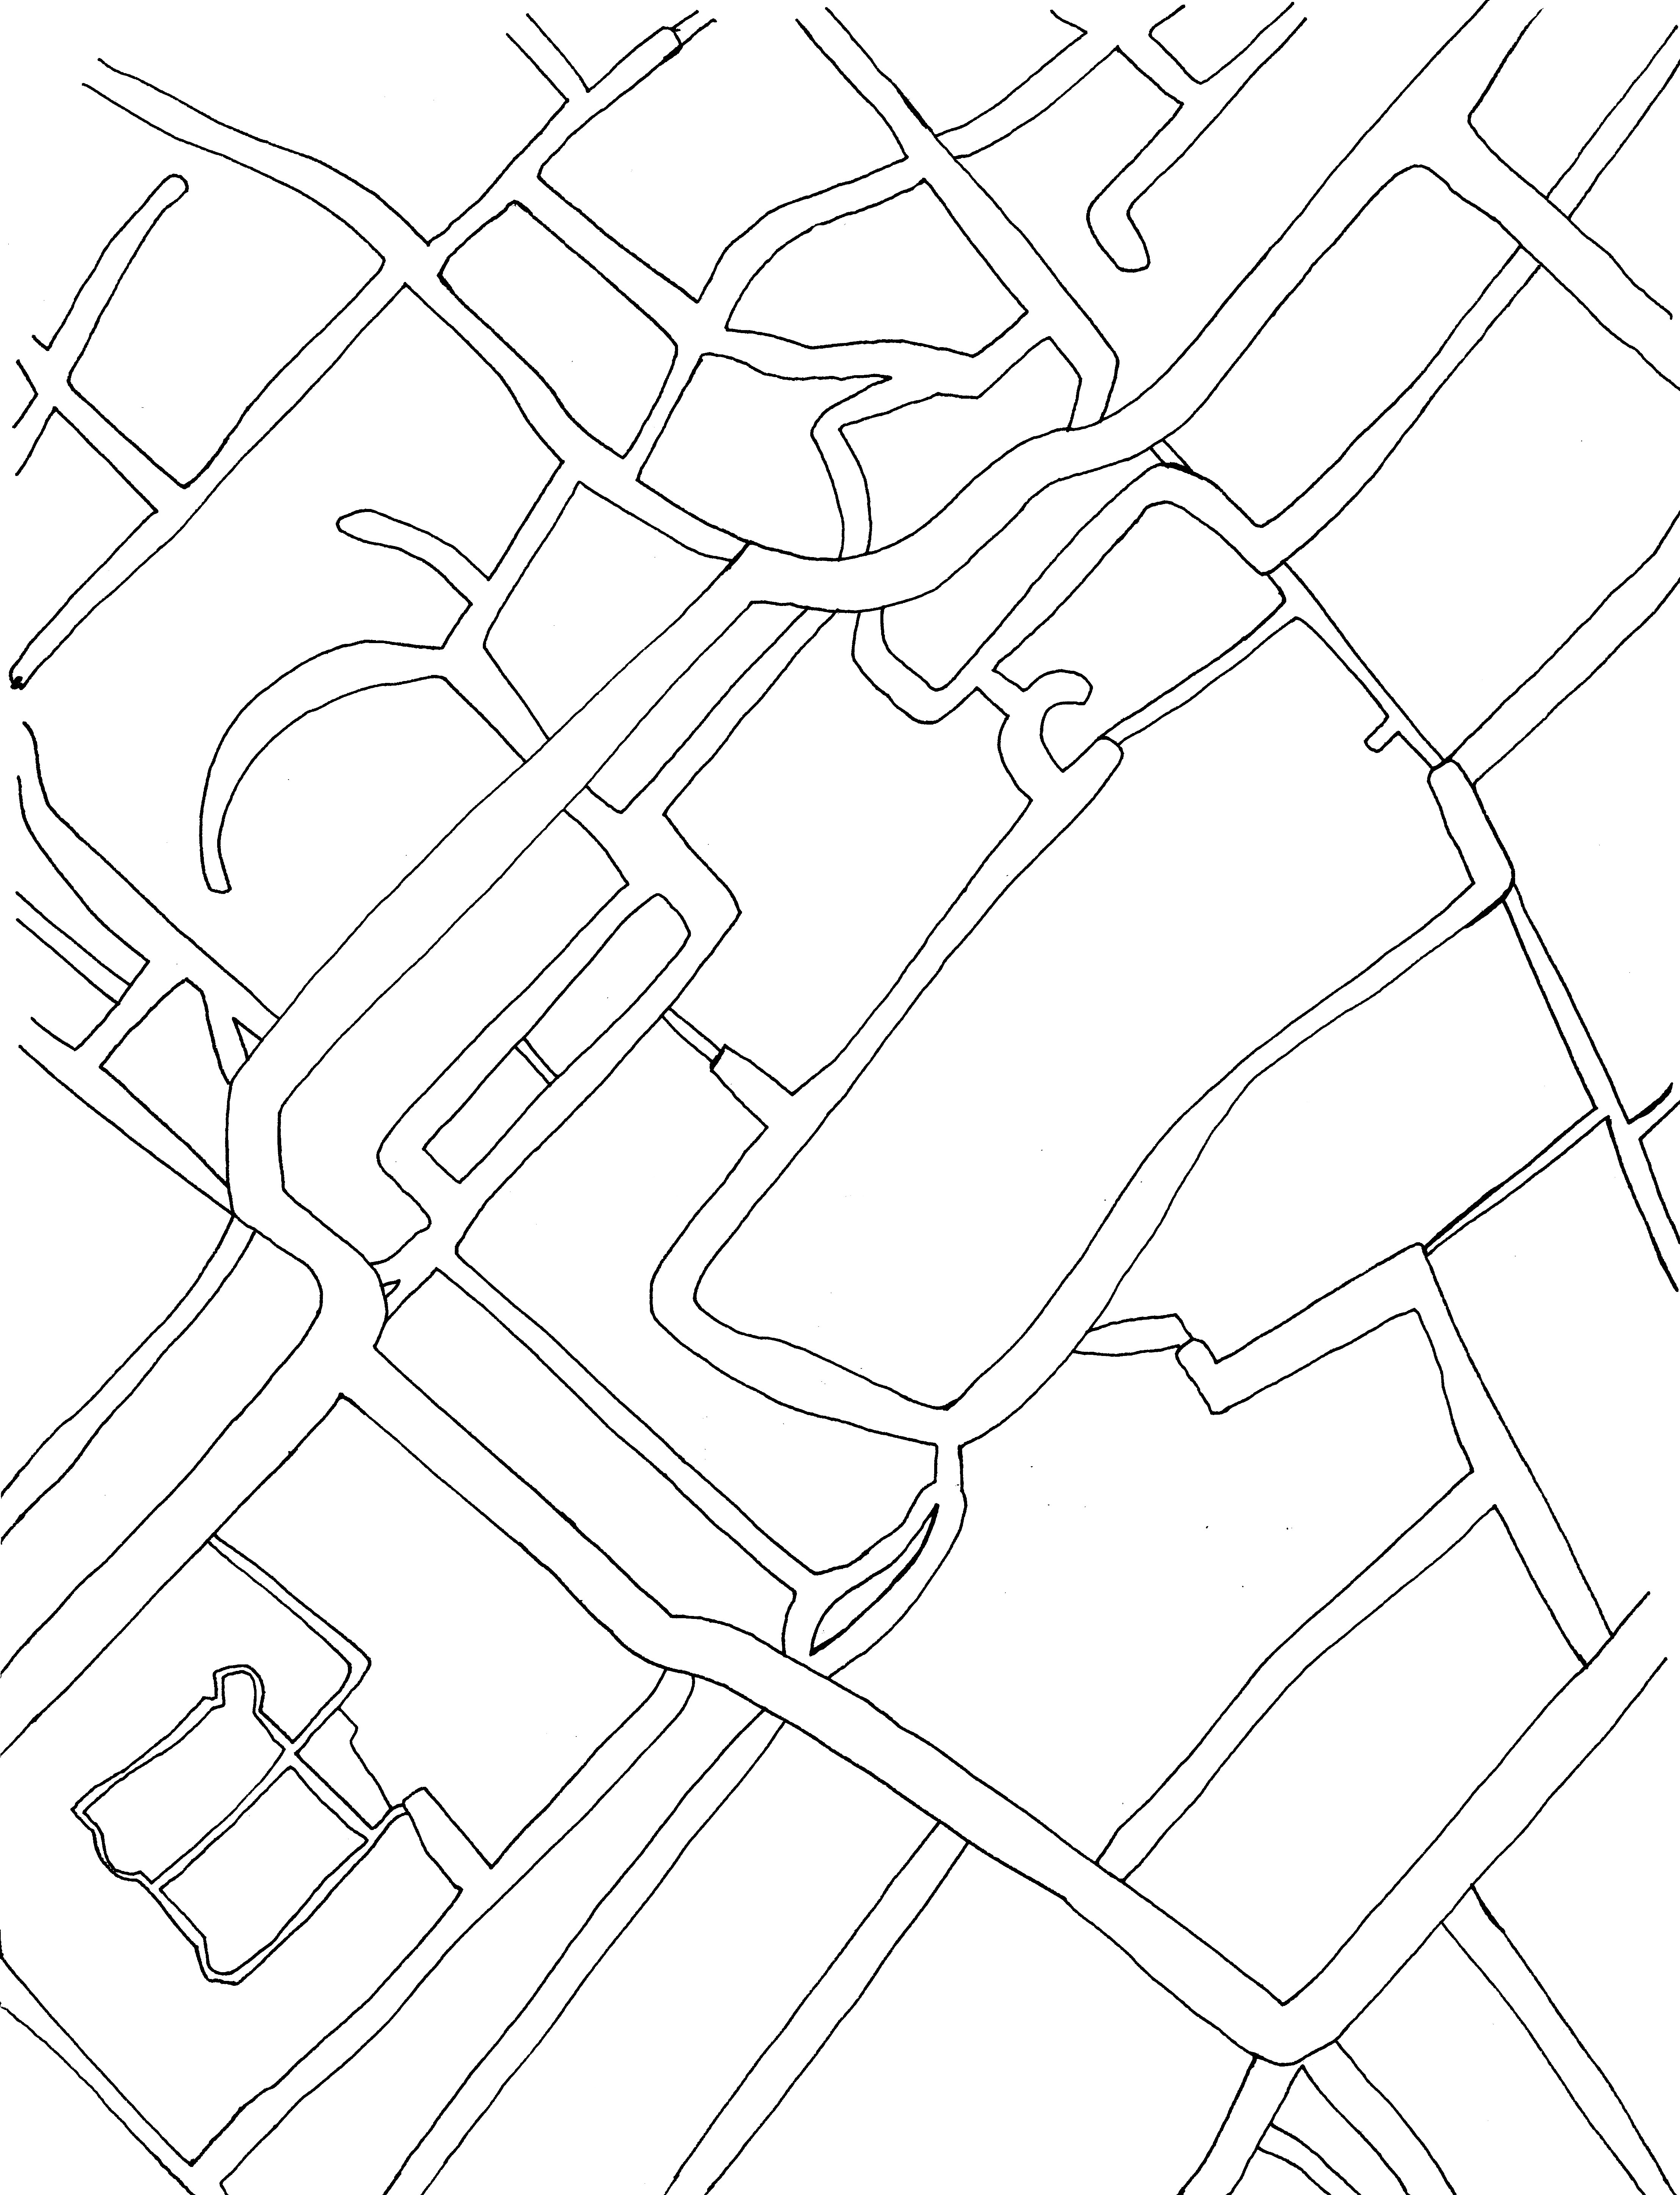 Drawn toad hand drawn Hand FMP FINELINEMAP1 FINELINEMAP3 and